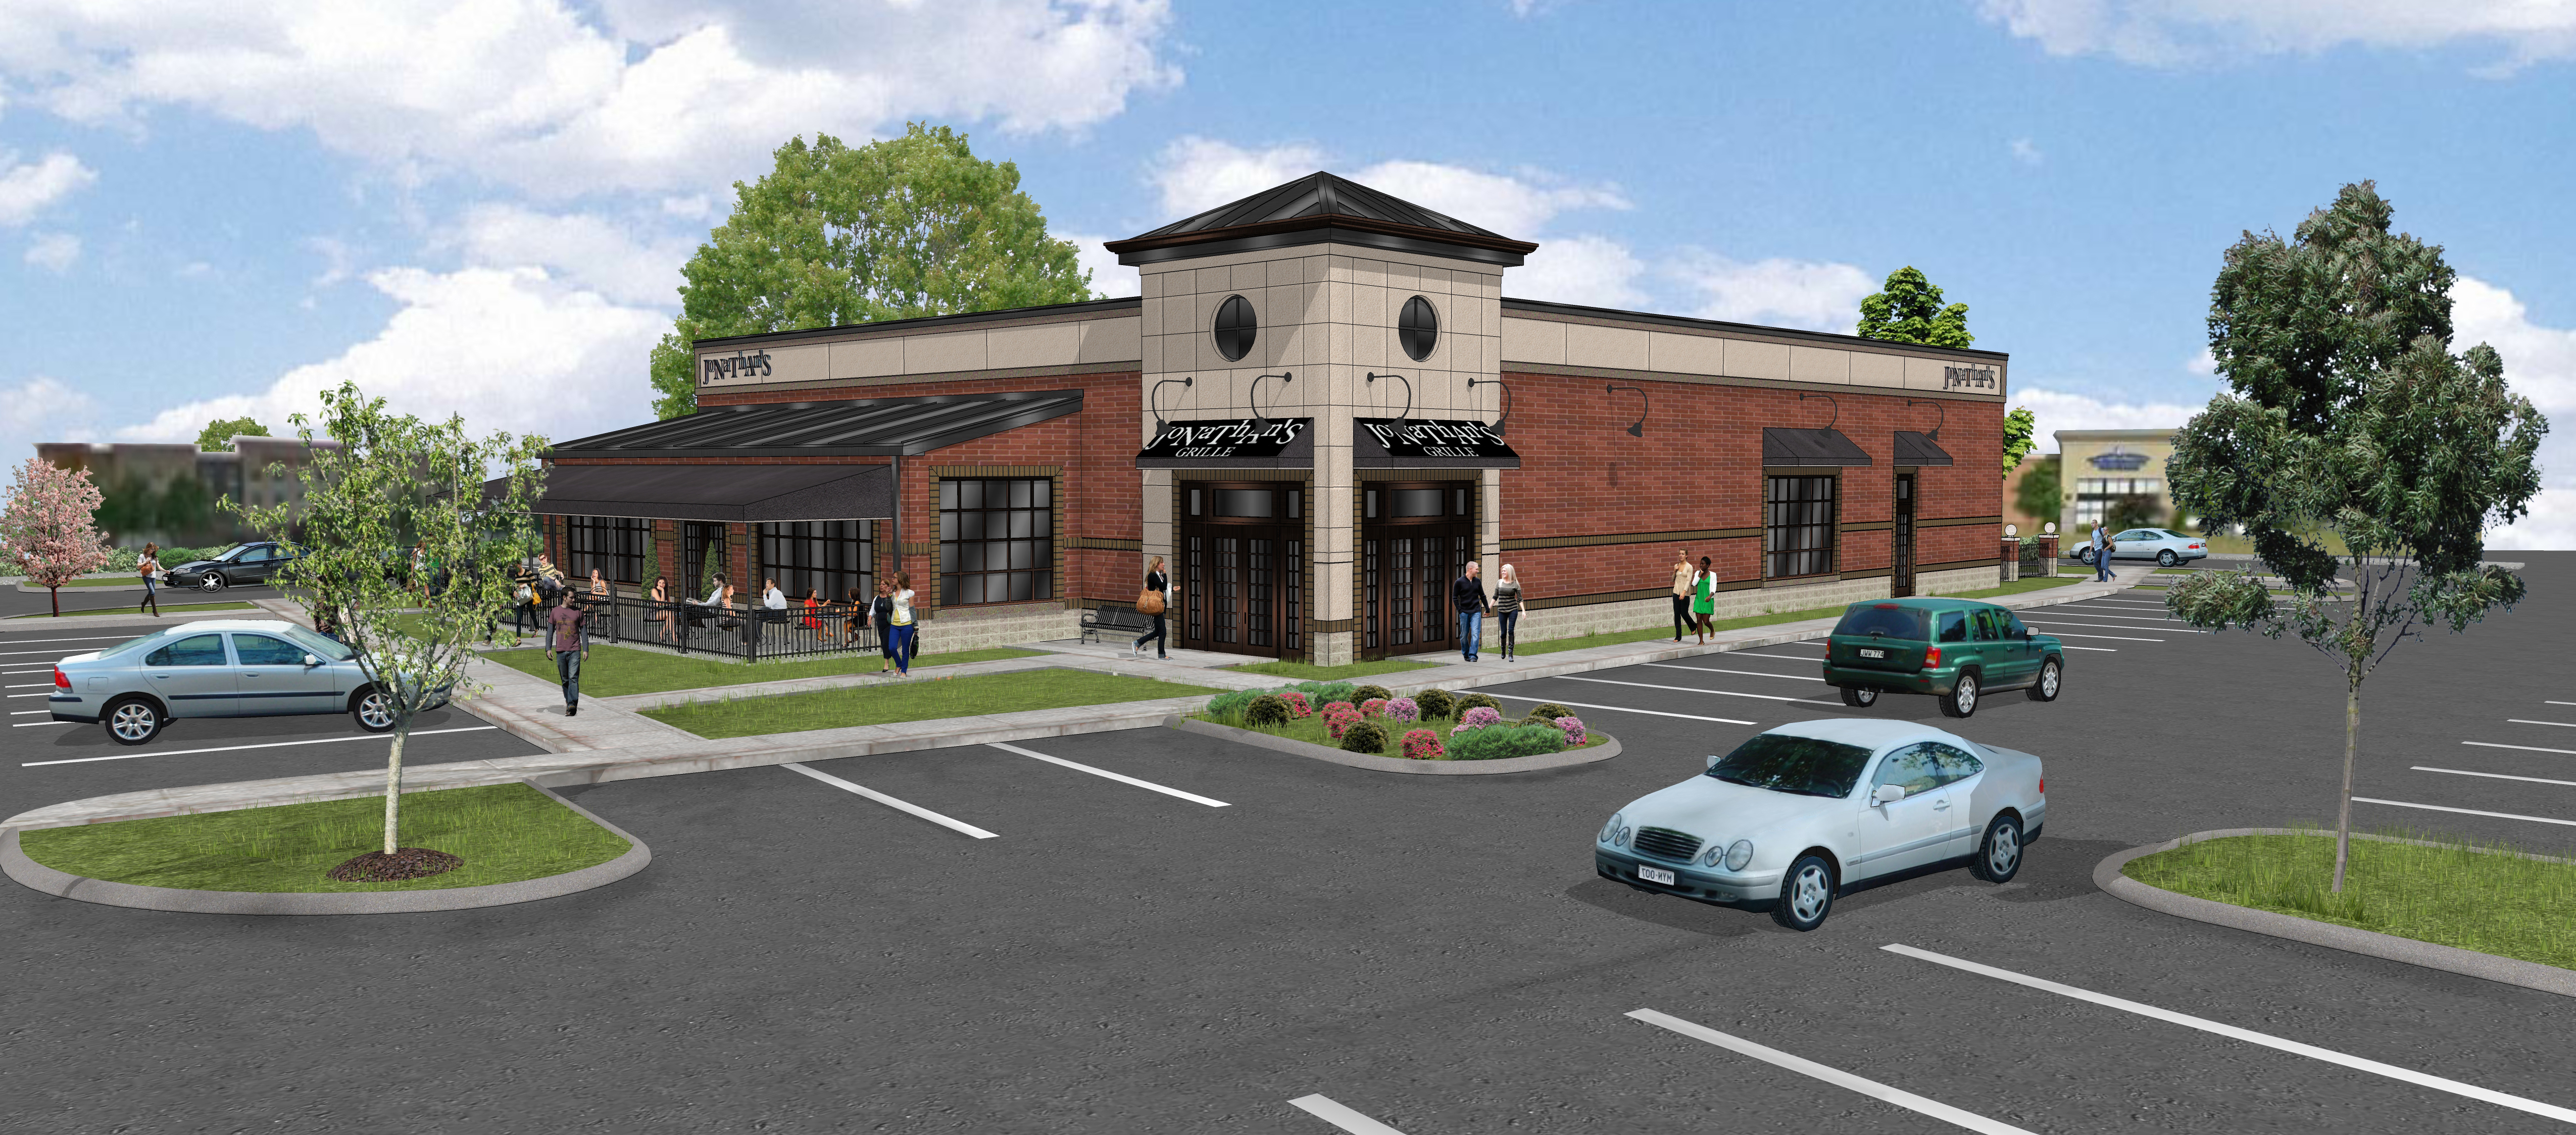 Jonathan's Grille Rendering 05-18-16